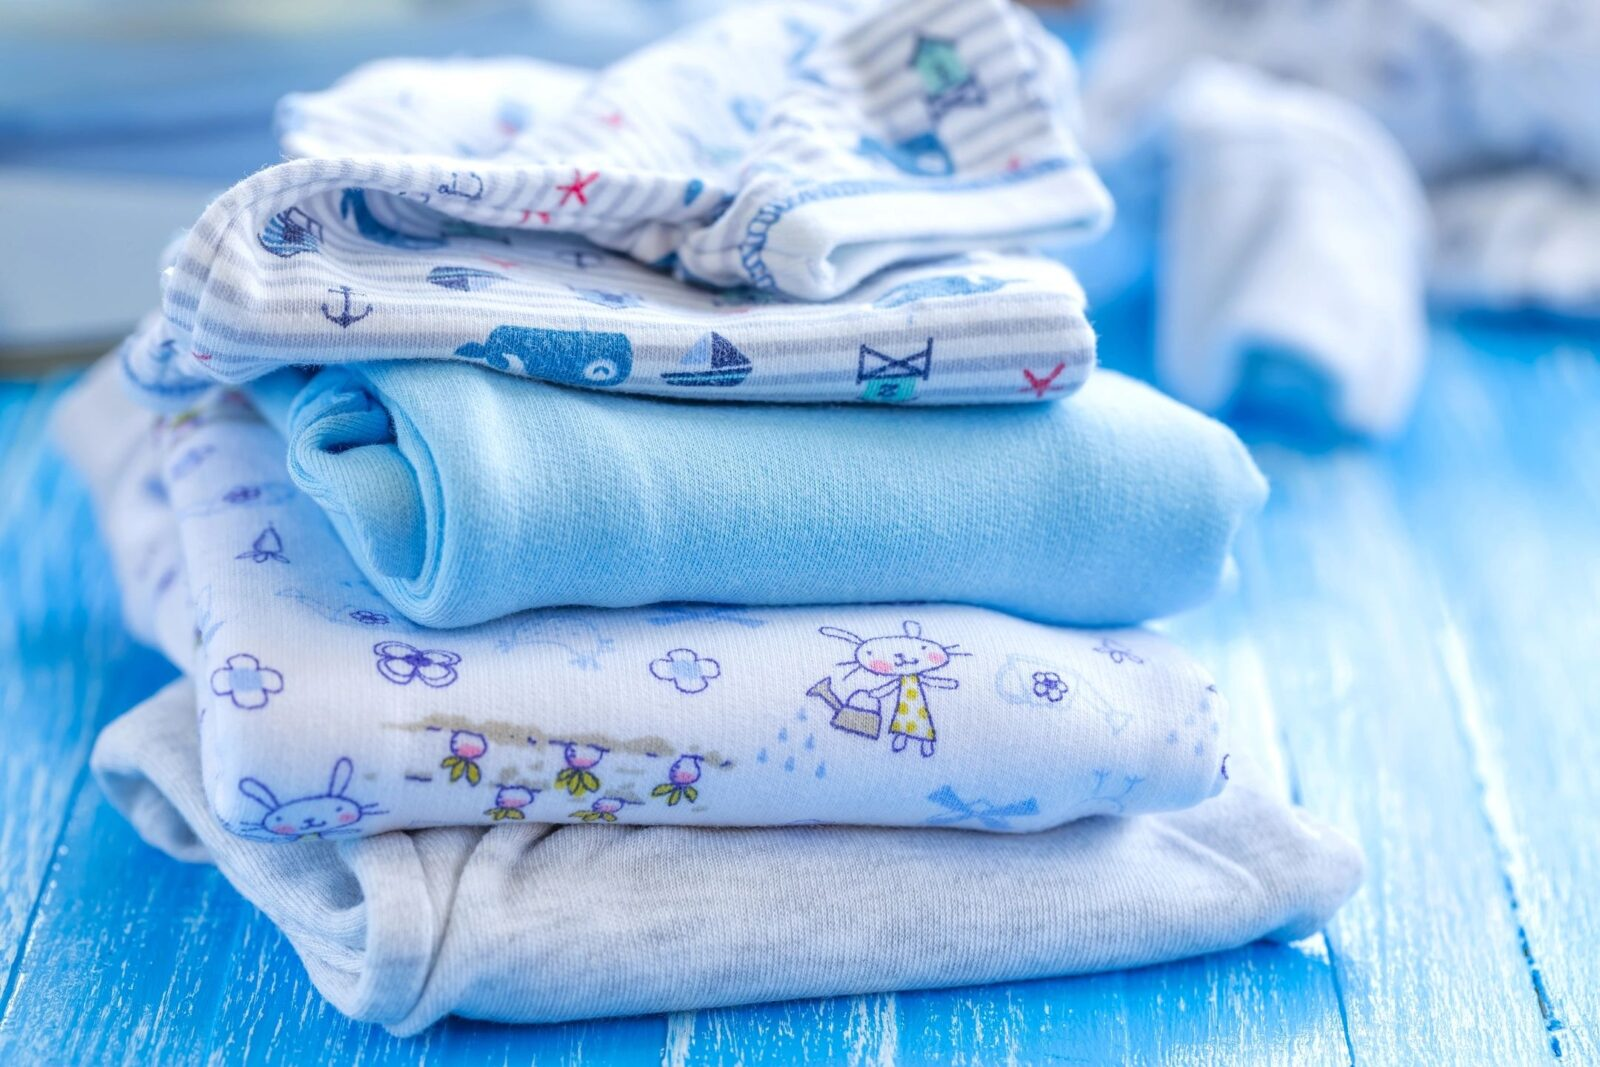 Baby Essentials: The Real Deal